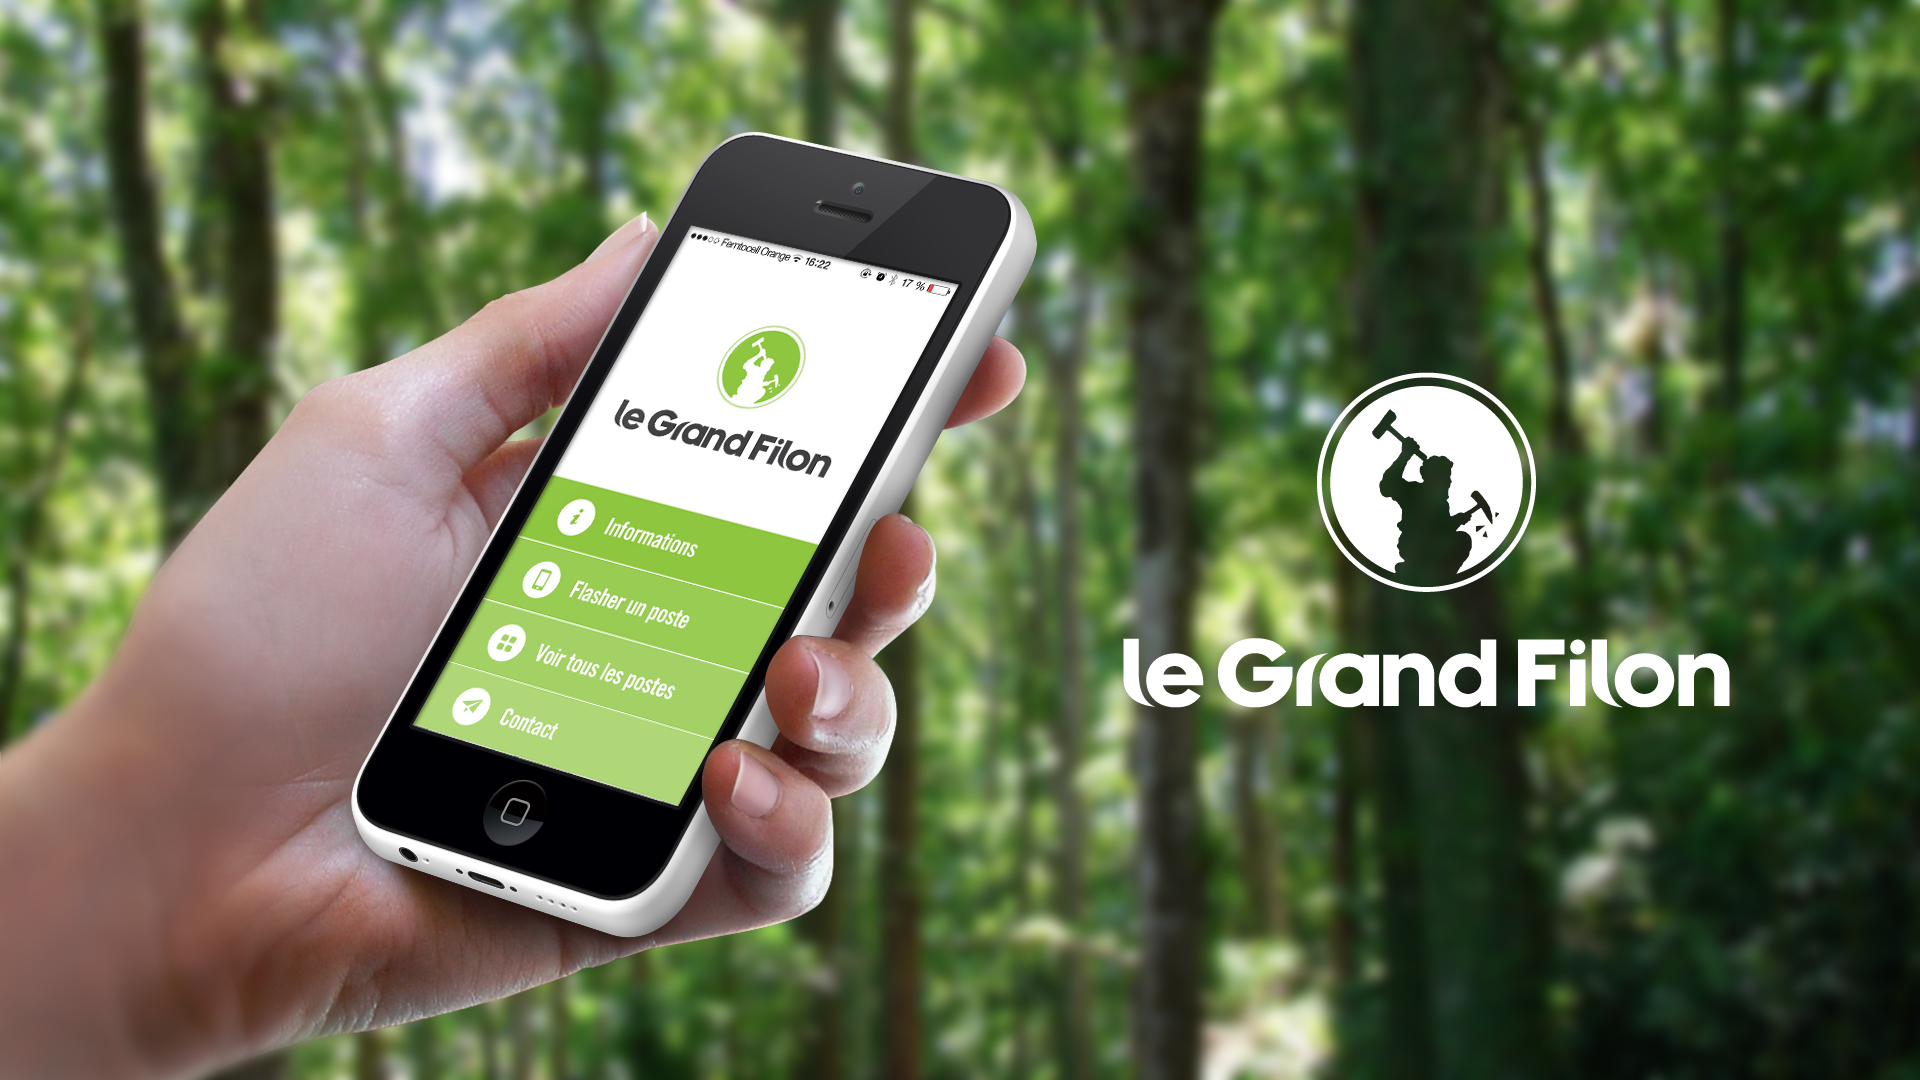 le-grand-filon-logo-application-depliant-creation-communication-caconcept-alexis-cretin-graphiste